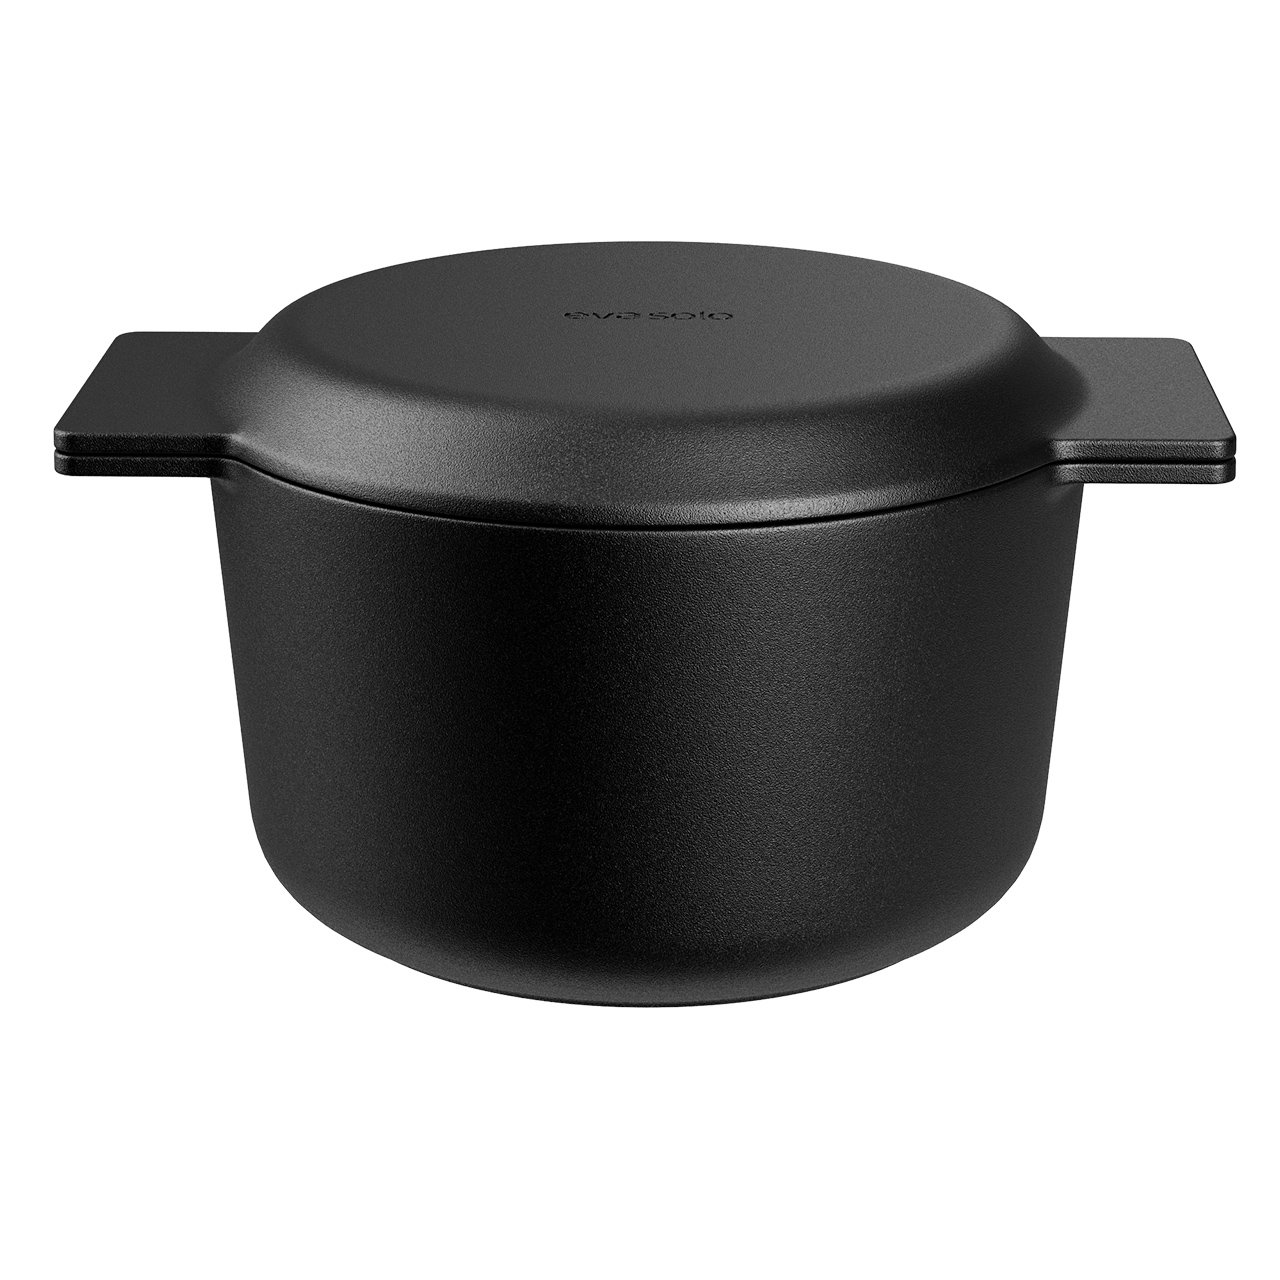 Nordic Kitchen Pot by Eva Solo